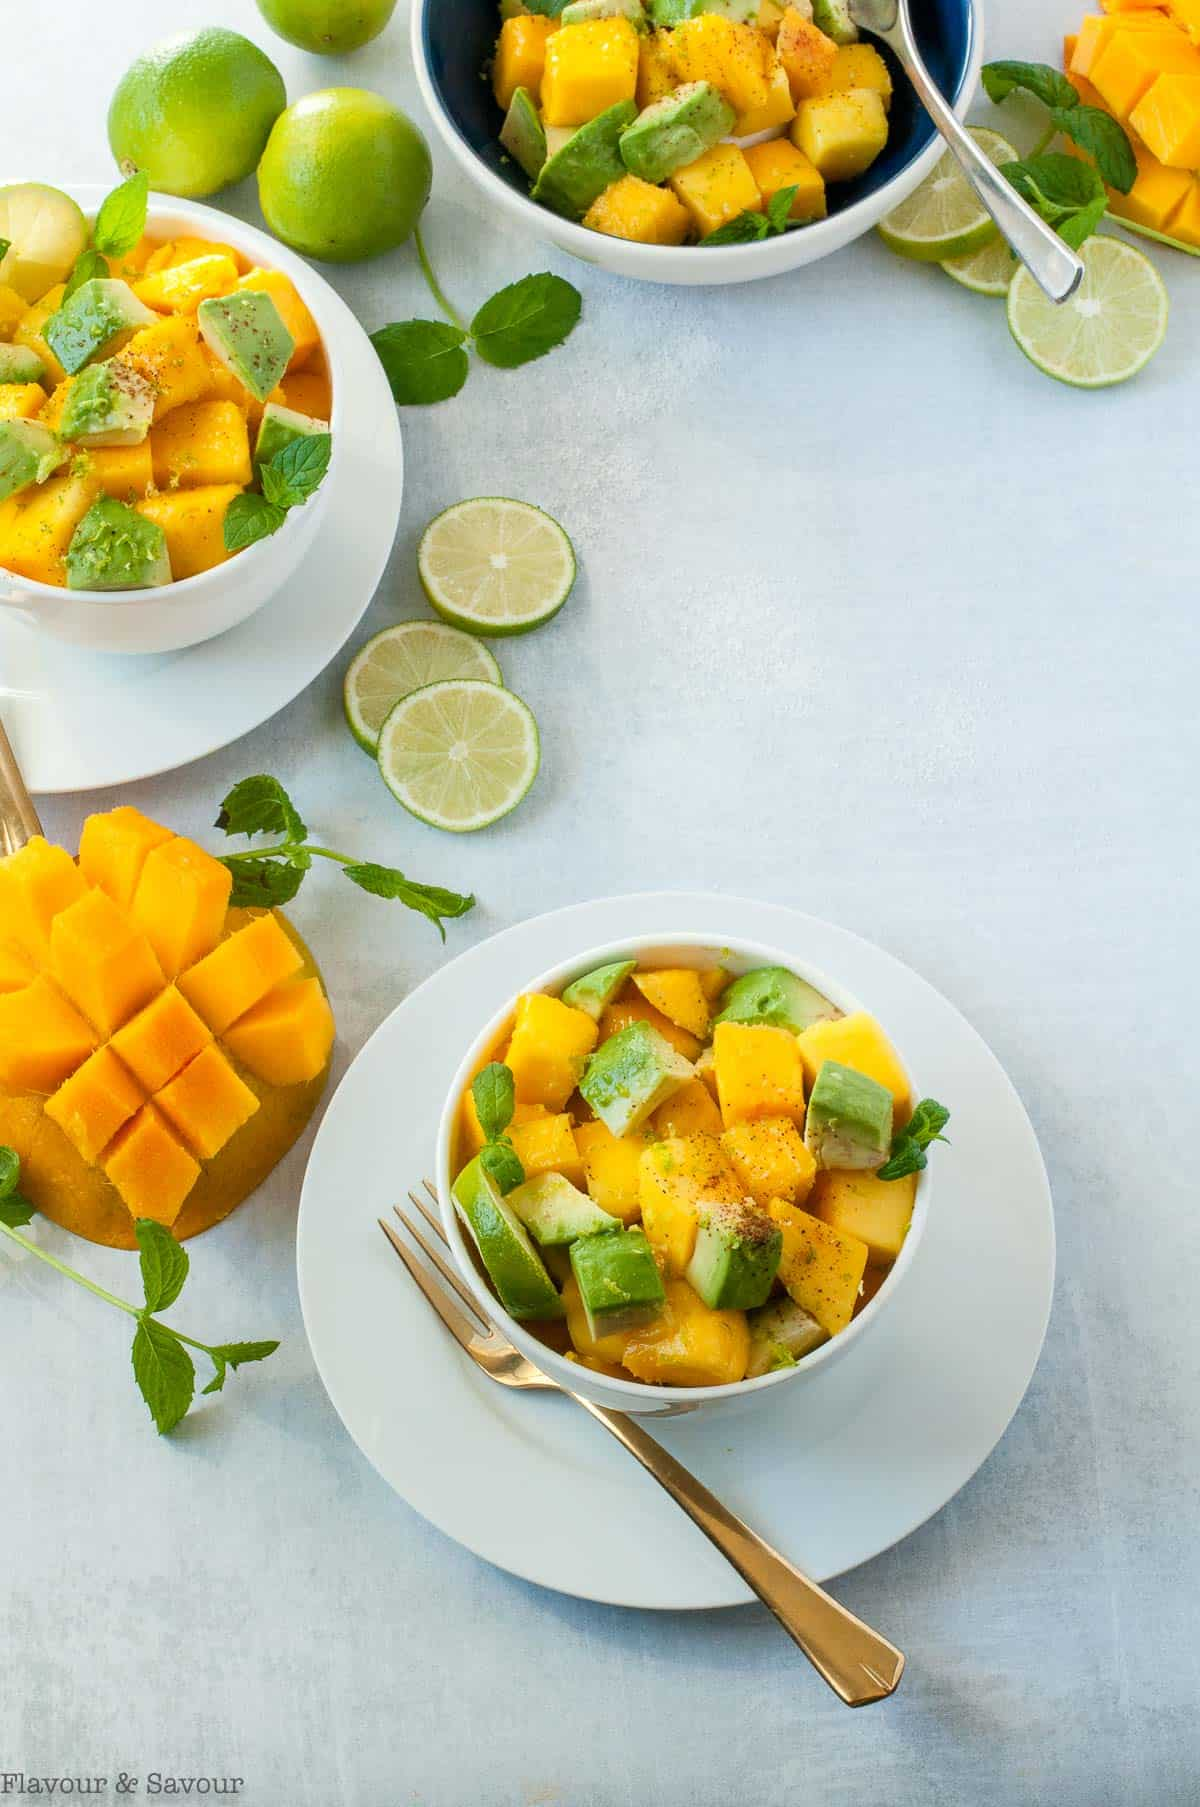 three bowls of Mango Avocado Chili Lime Salad with lime slices, mint leaves and cubed mango on the table